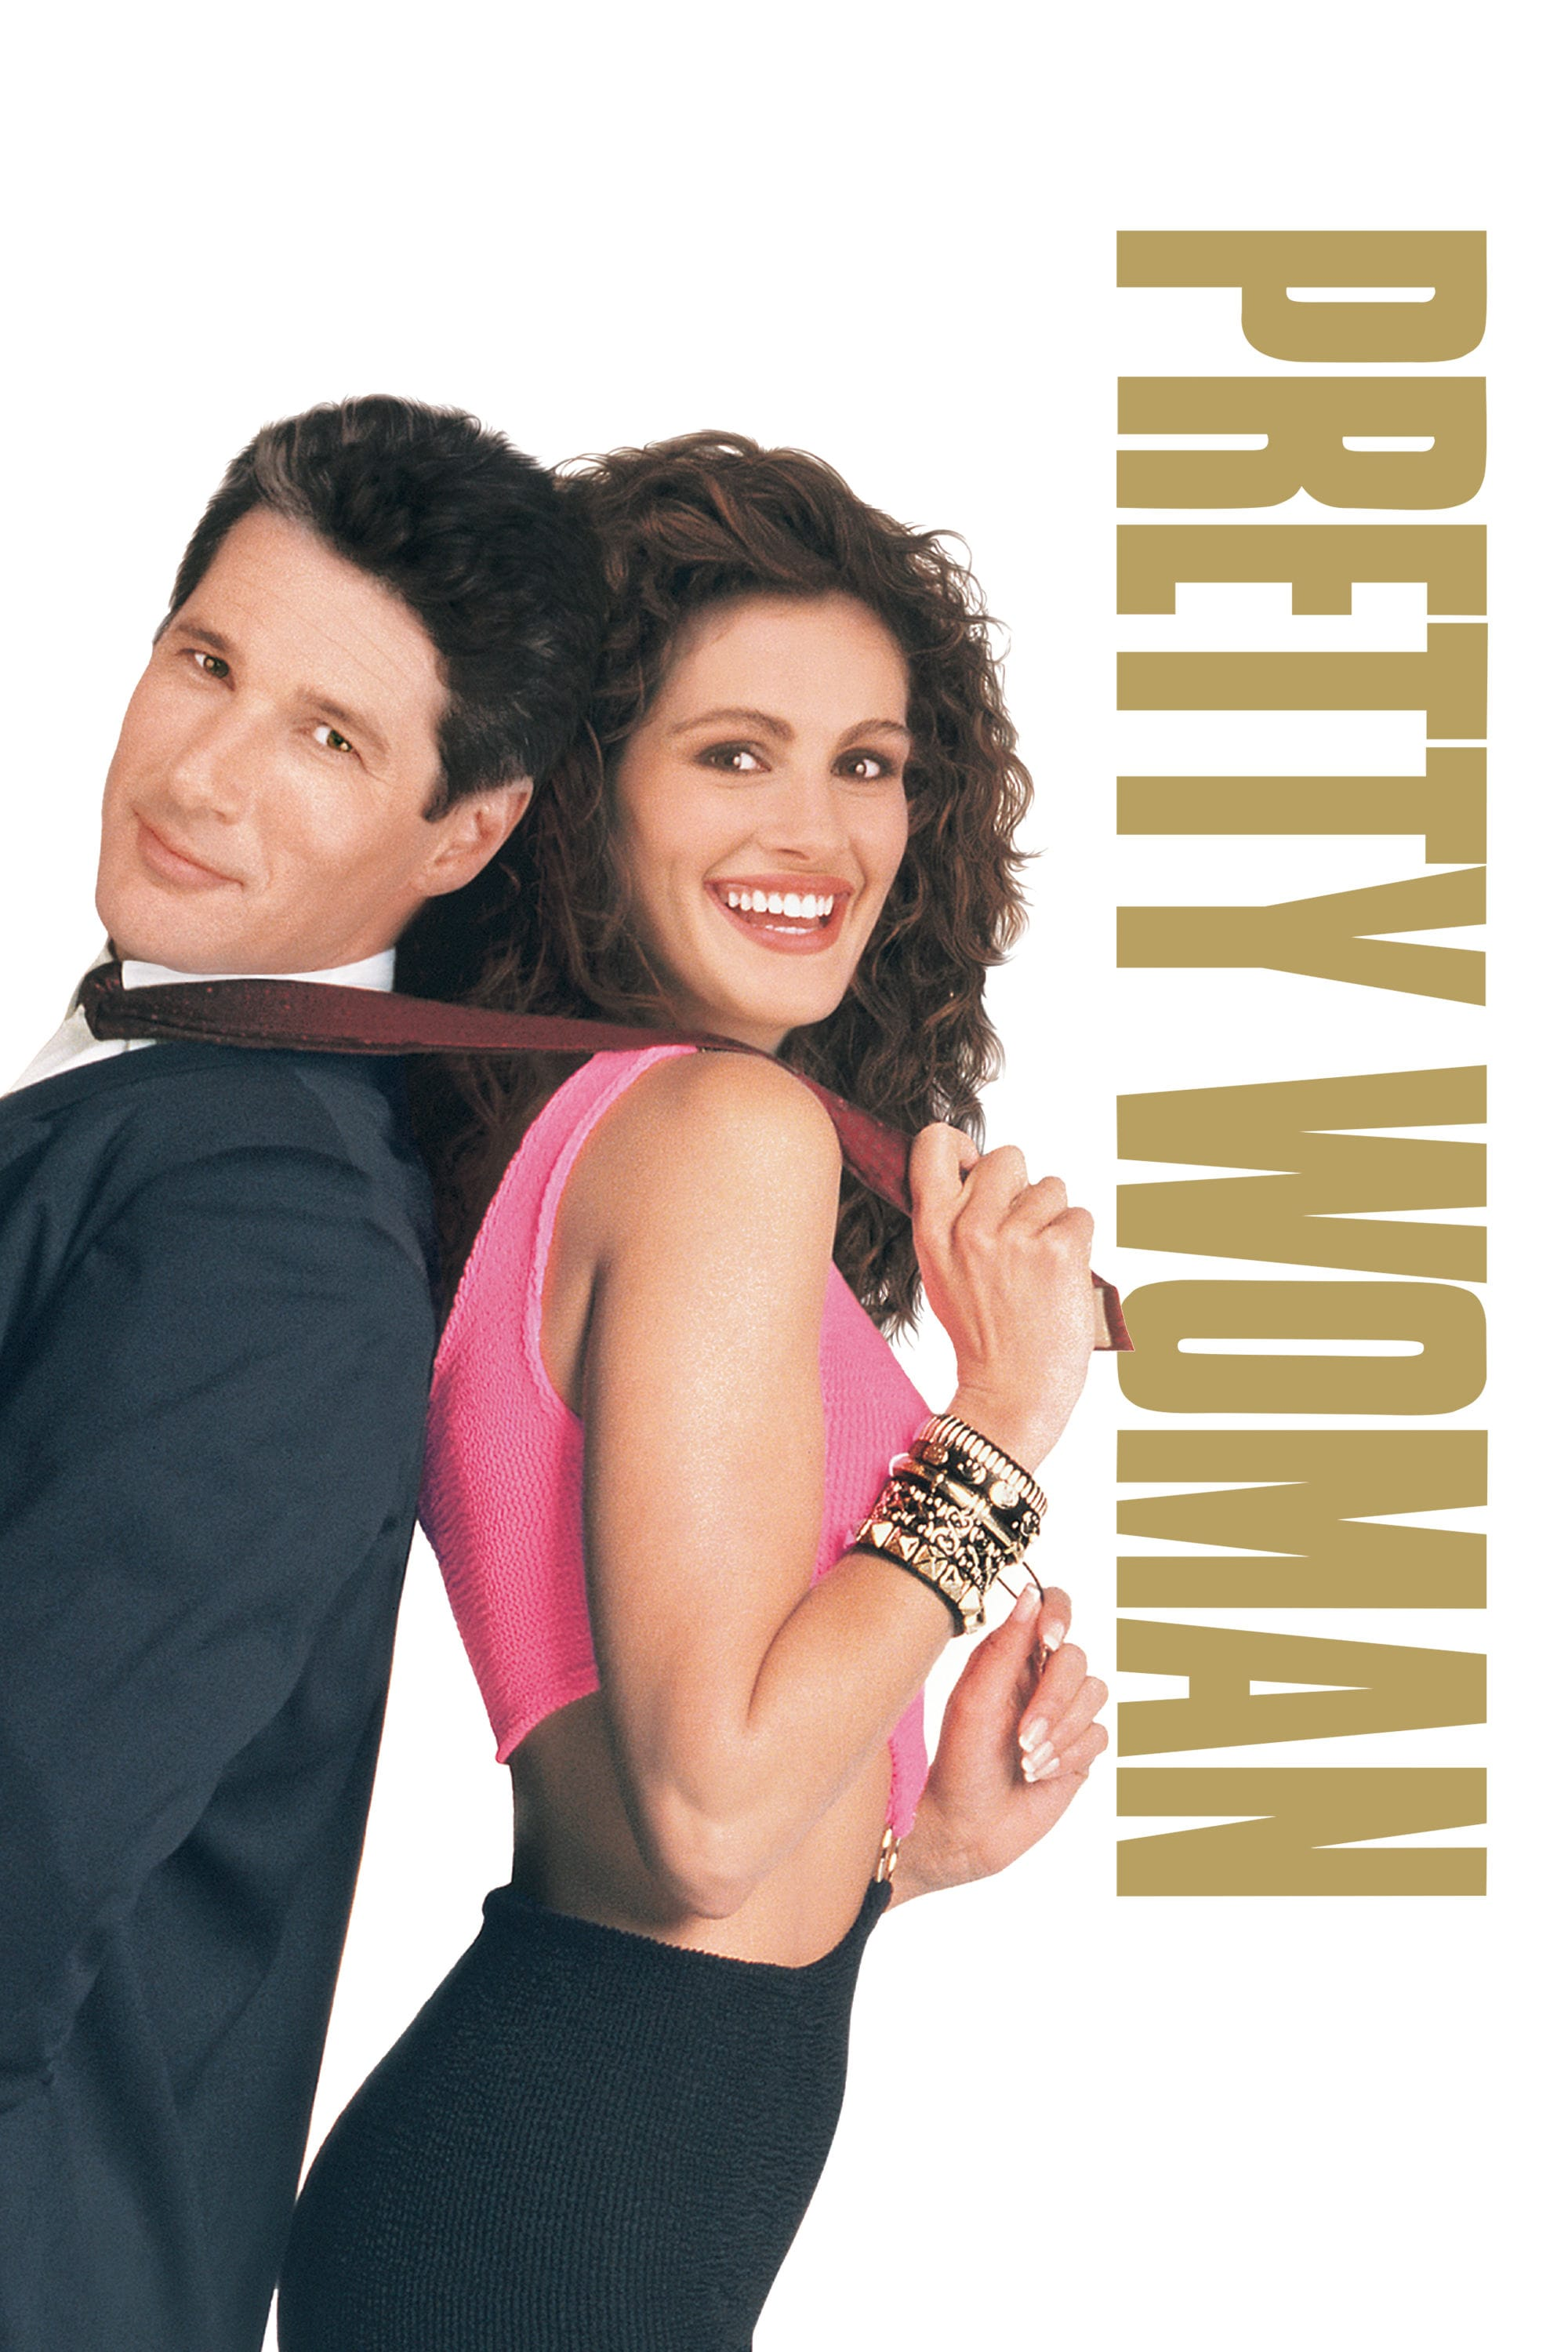 pretty-woman-filming-locations-poster